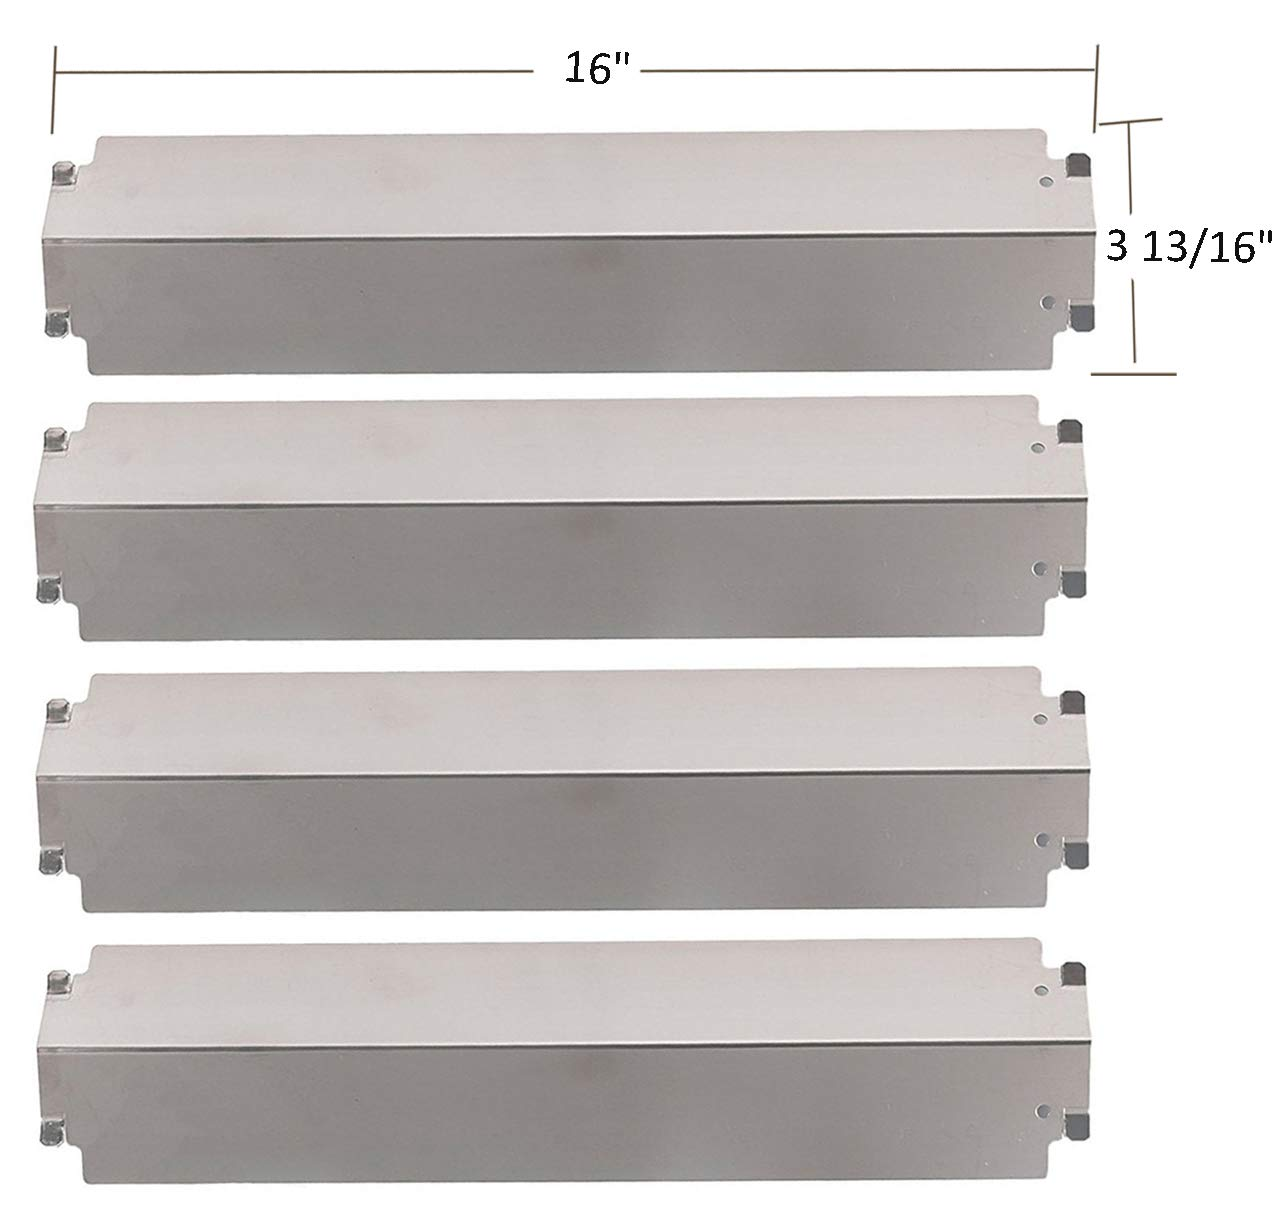 SH3321 (4-pack) Stainless Steel Heat Plate, Heat Shield, Heat Tent, Burner Cover Replacement for Select Gas Grill Models by Charbroil, Thermos, Kenmore Sears, Lowes Model Grills and Others by BBQ funland